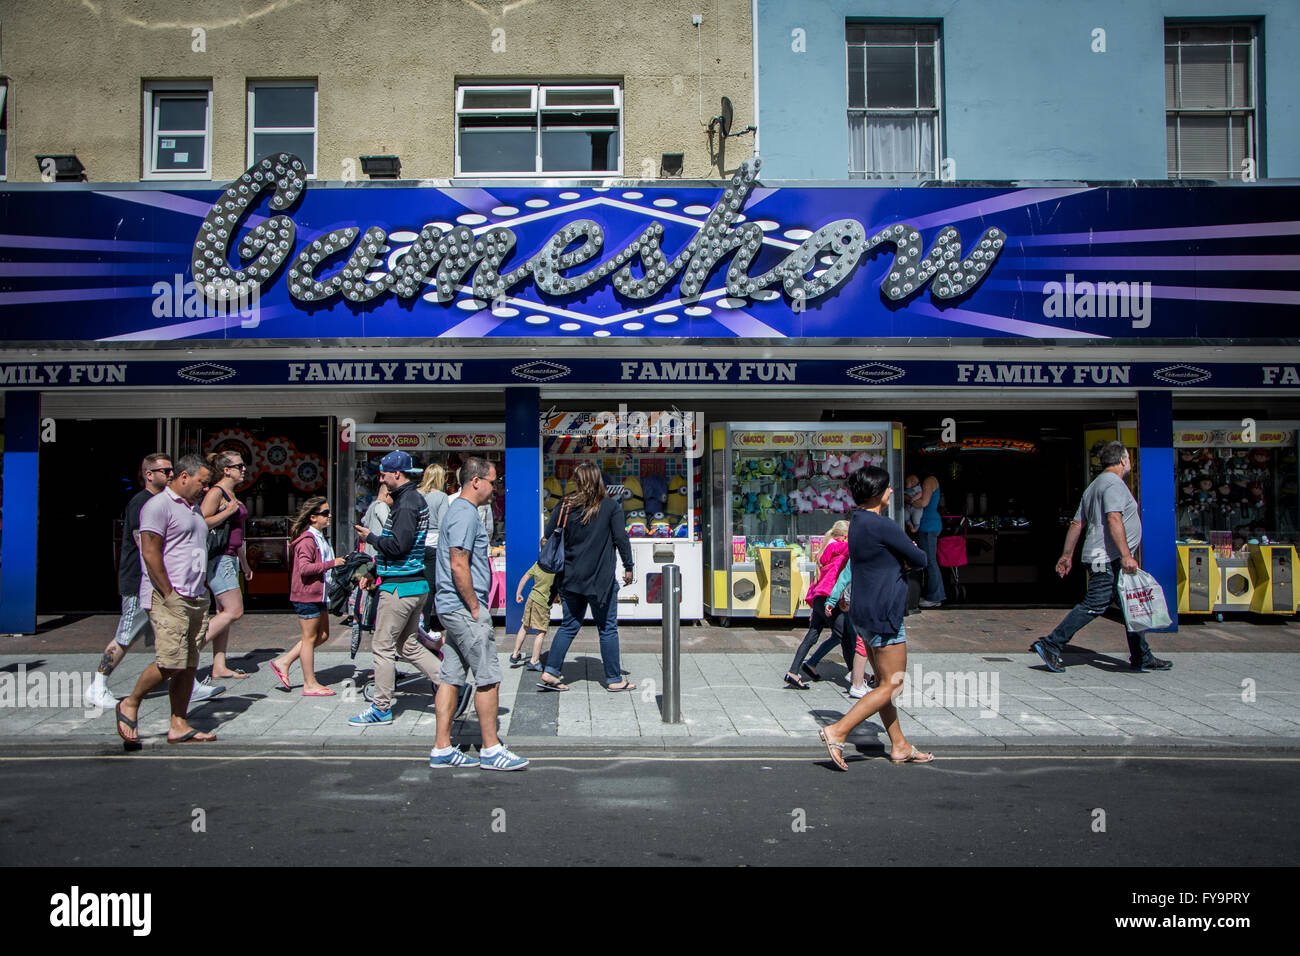 Family arcade in Clacton-on-Sea, Essex, England - Stock Image